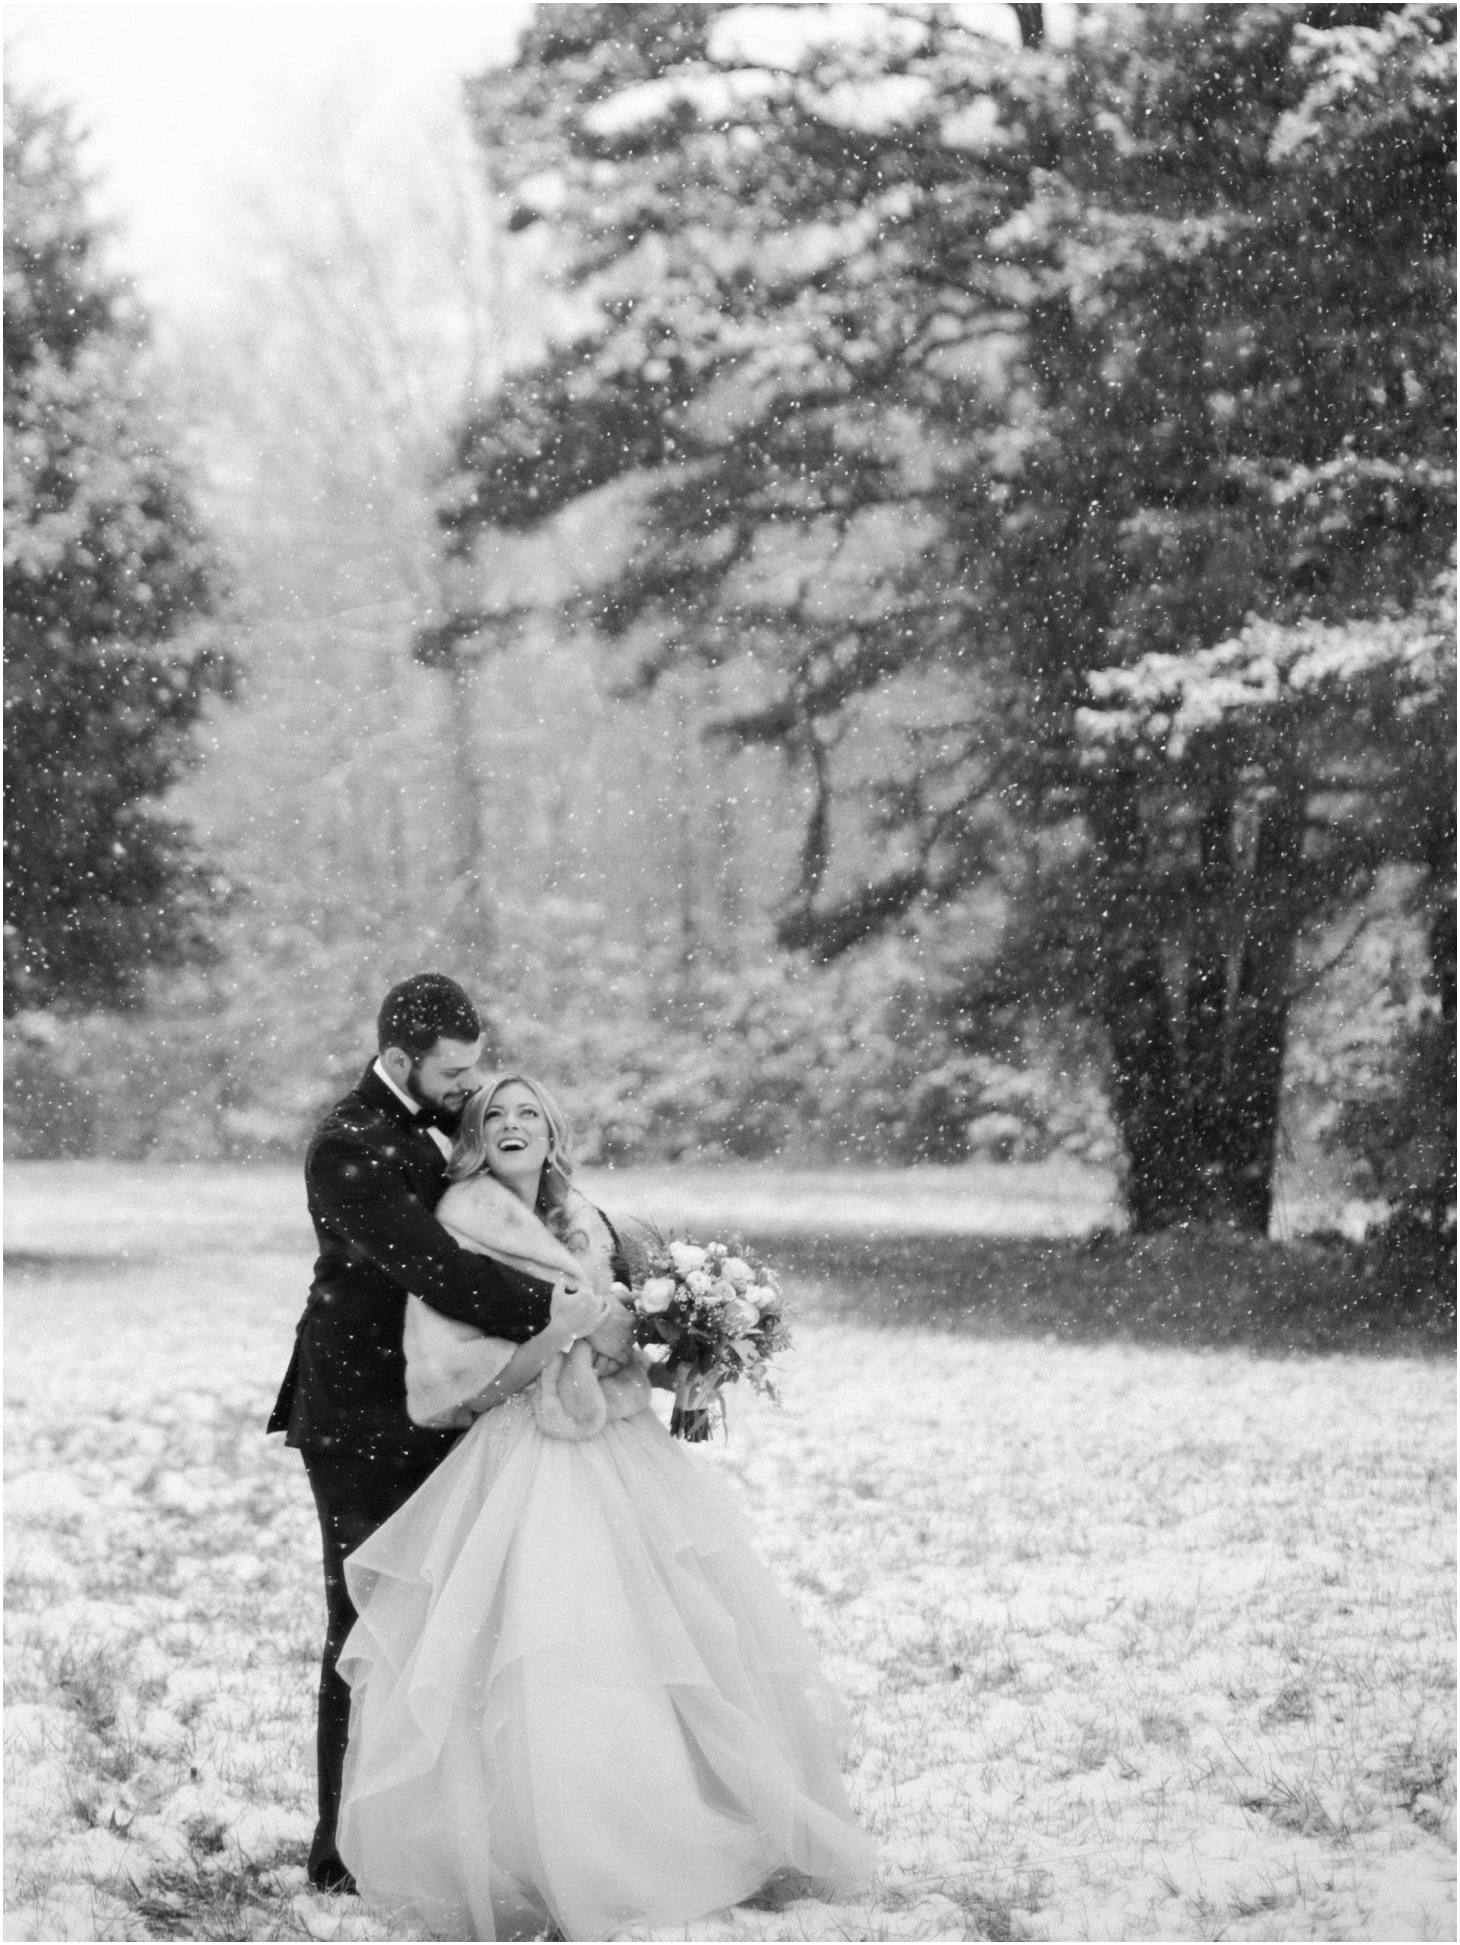 Kim Stockwell Photography Matt and Ashley Morais Vineyard Film Wedding_0042